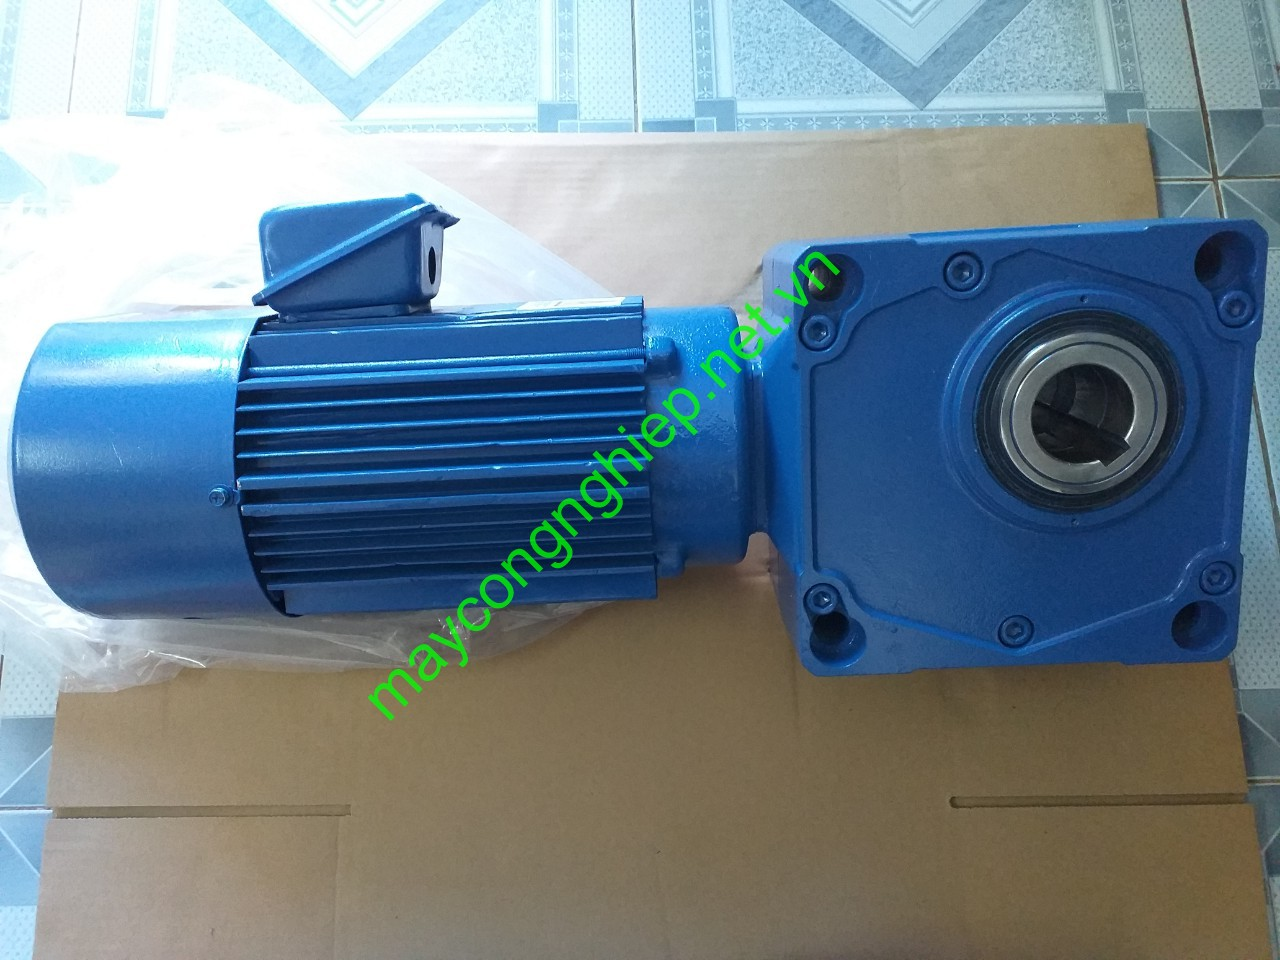 motor-giam-toc-cot-am-sumitomo-hyponic-2-2kw-1-50